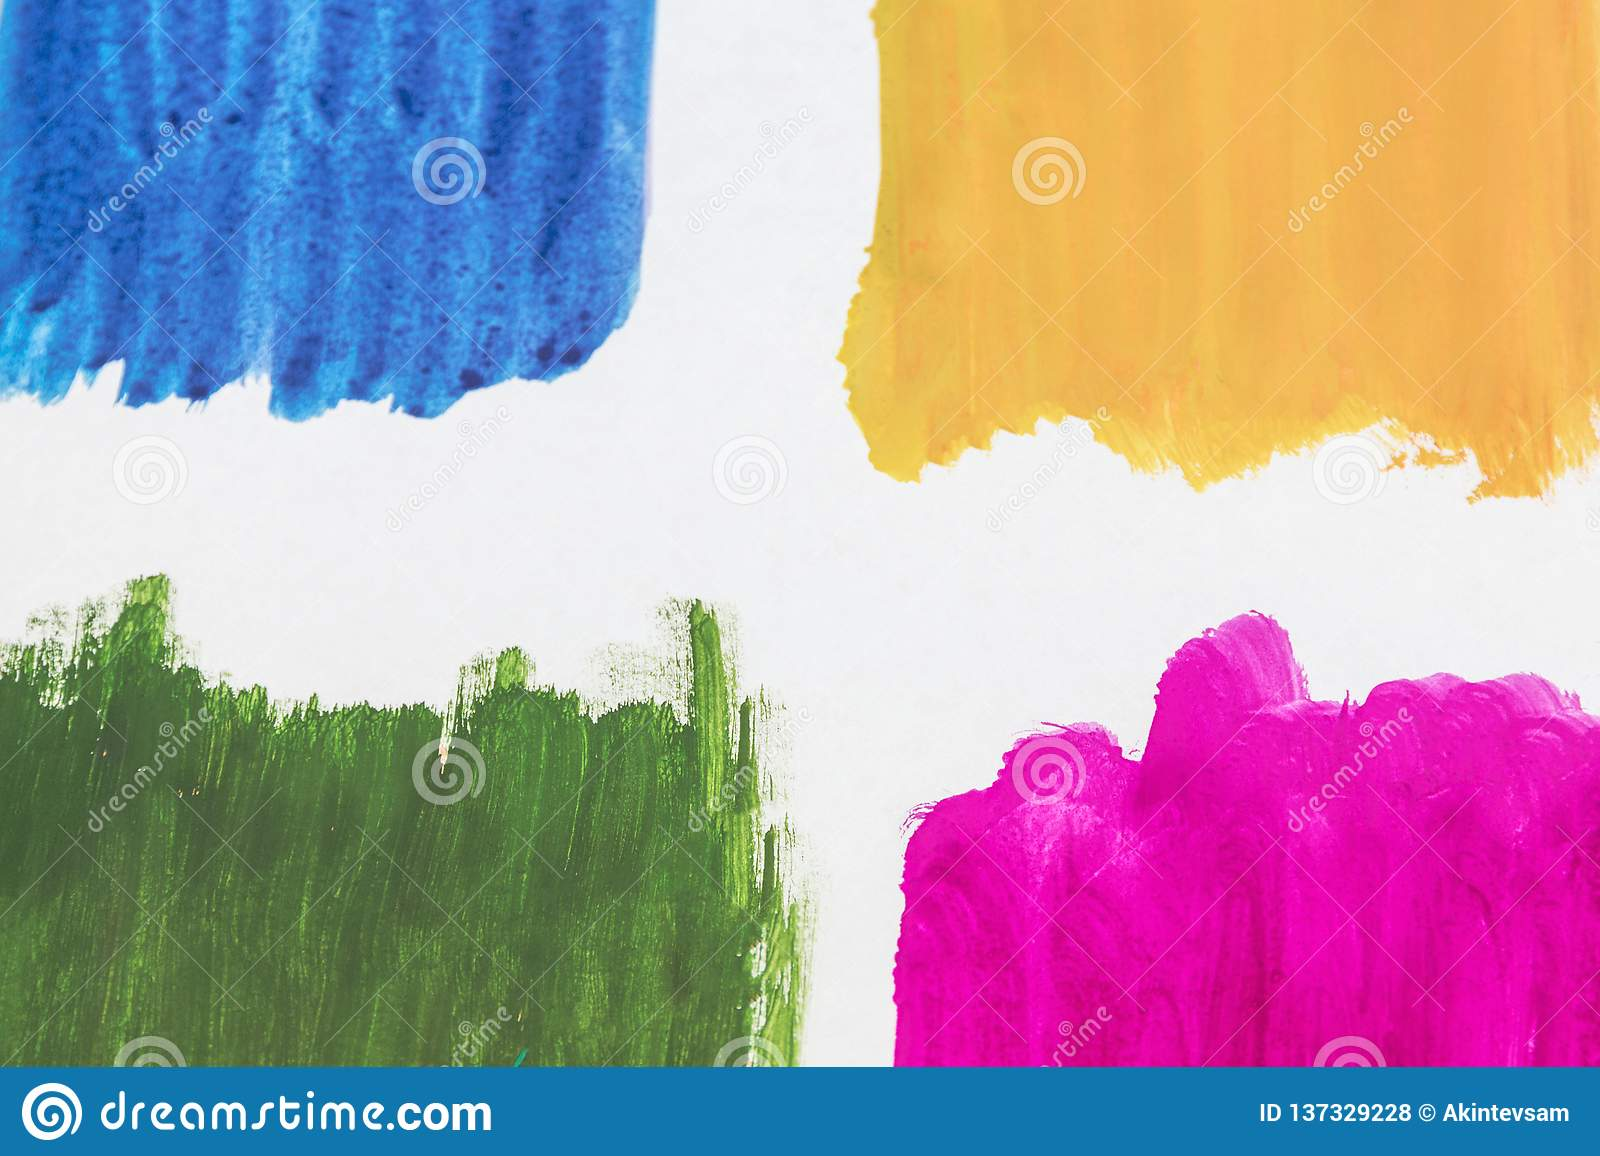 Four colors of watercolor paint on a white background